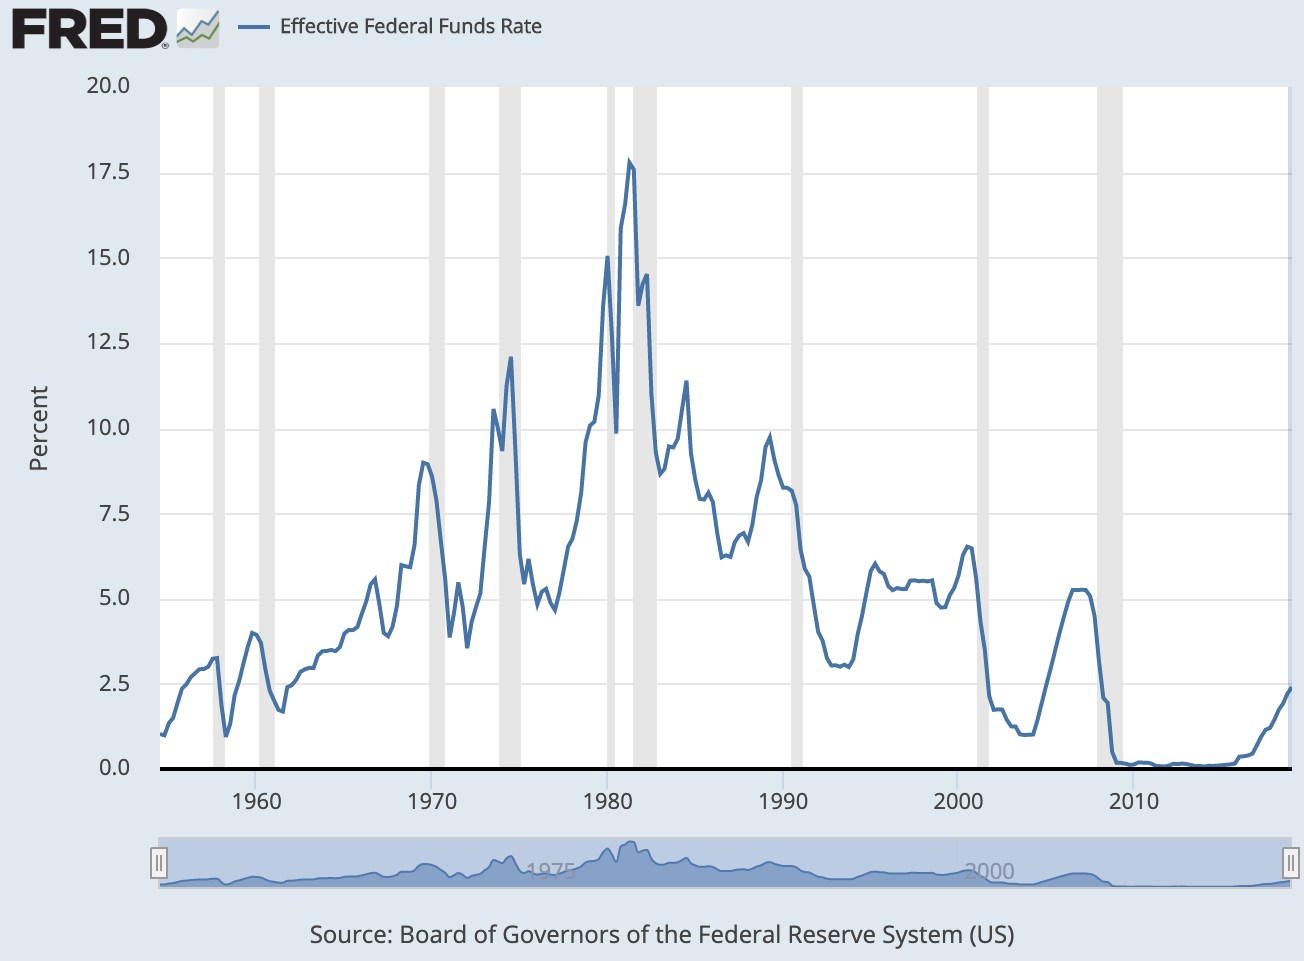 Historical effective Federal Funds Rate - Interest rate history